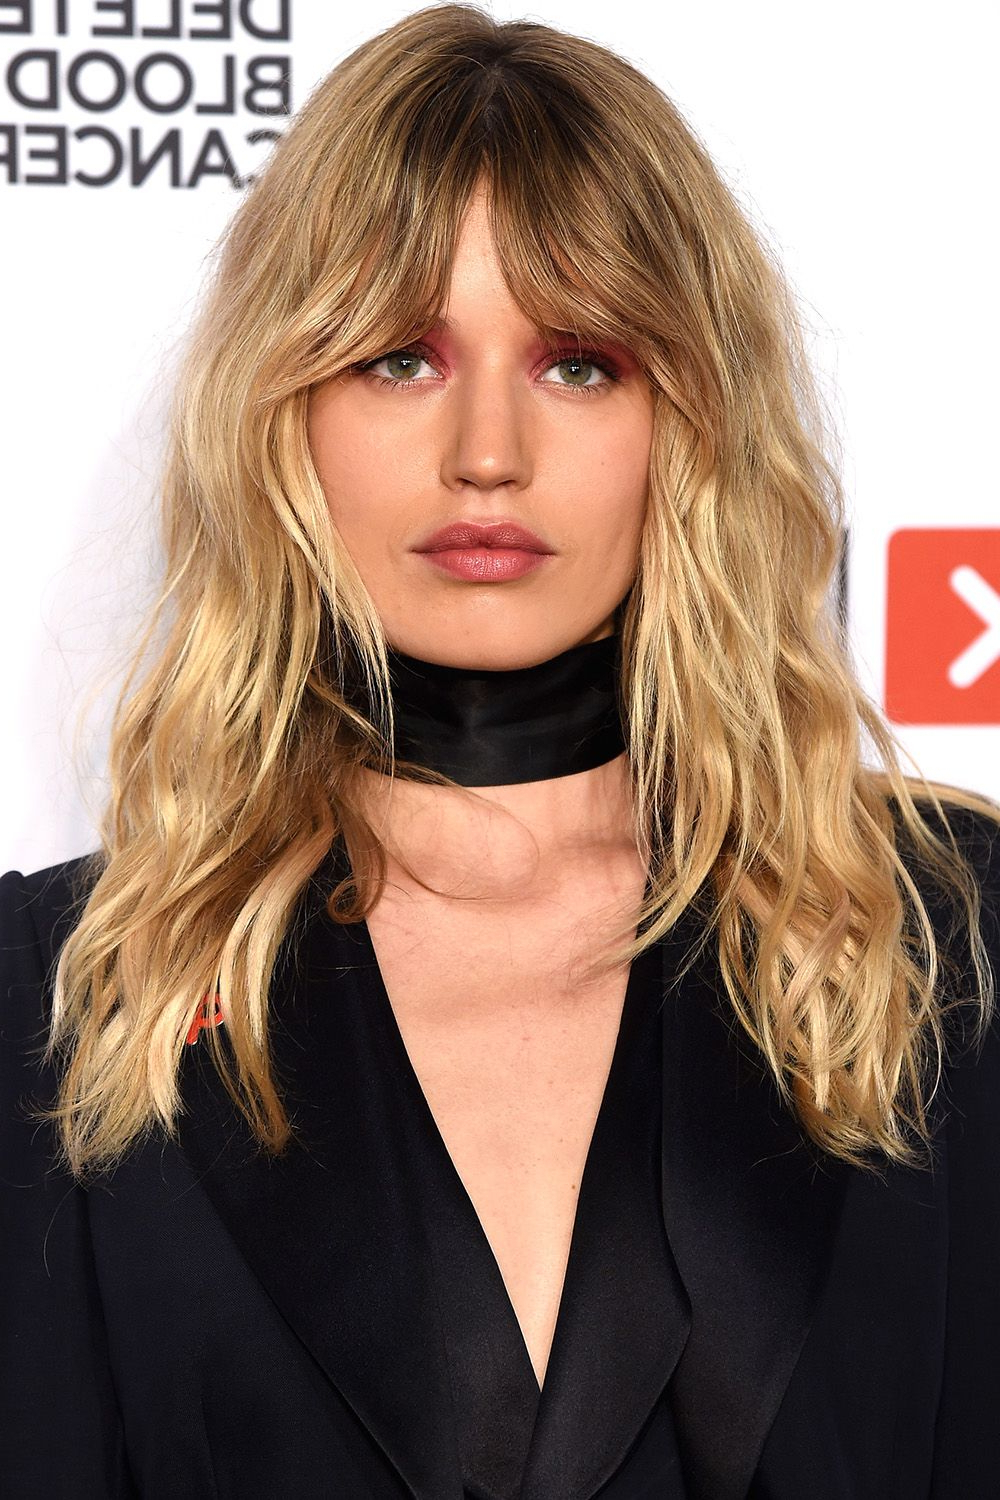 40 Best Medium Hairstyles – Celebrities With Shoulder Length Haircuts Pertaining To Short Red Haircuts With Wispy Layers (View 10 of 20)